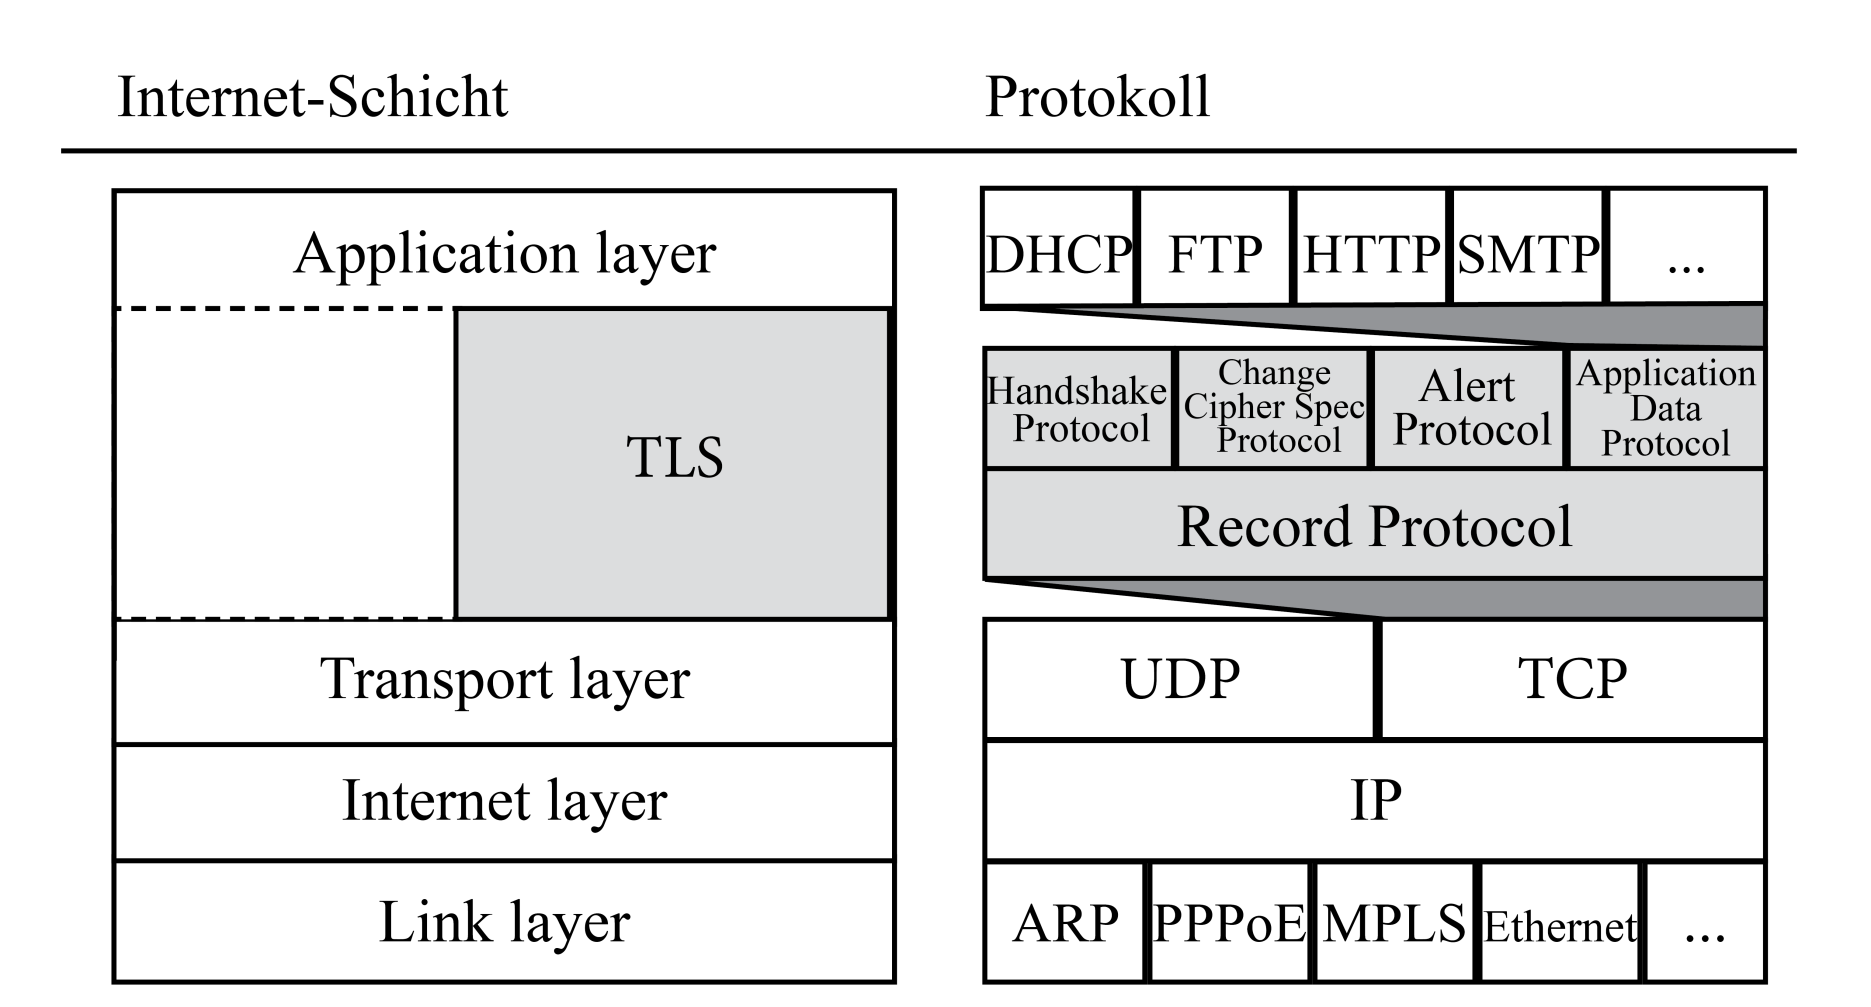 TLS Application Data Protocol